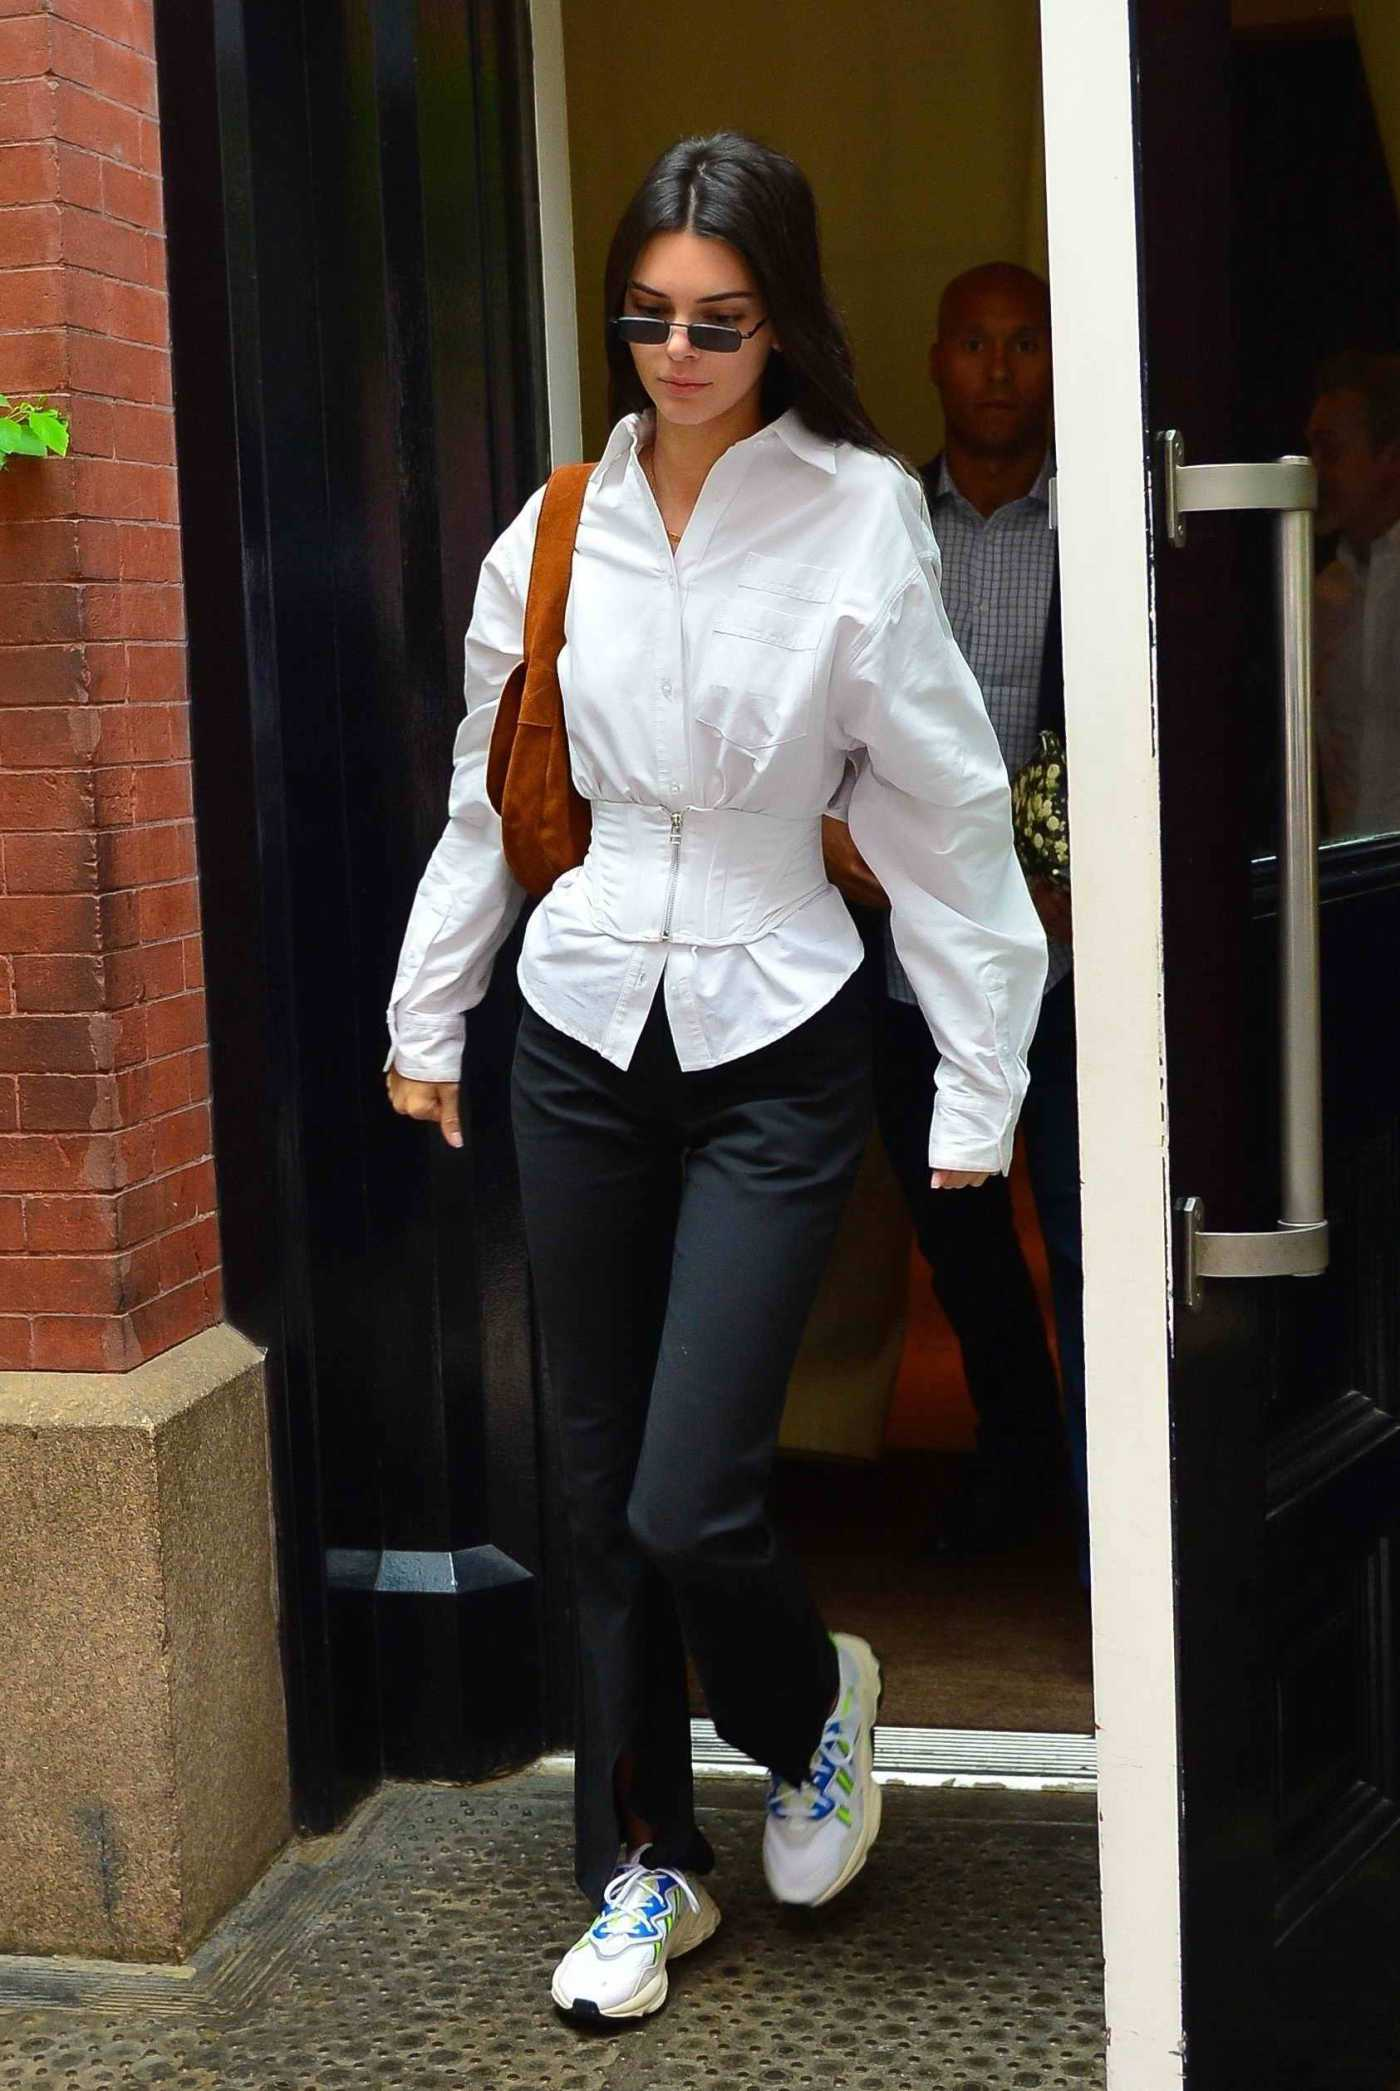 Kendall Jenner in a White Blouse Was Seen Out in NYC 05/31/2019